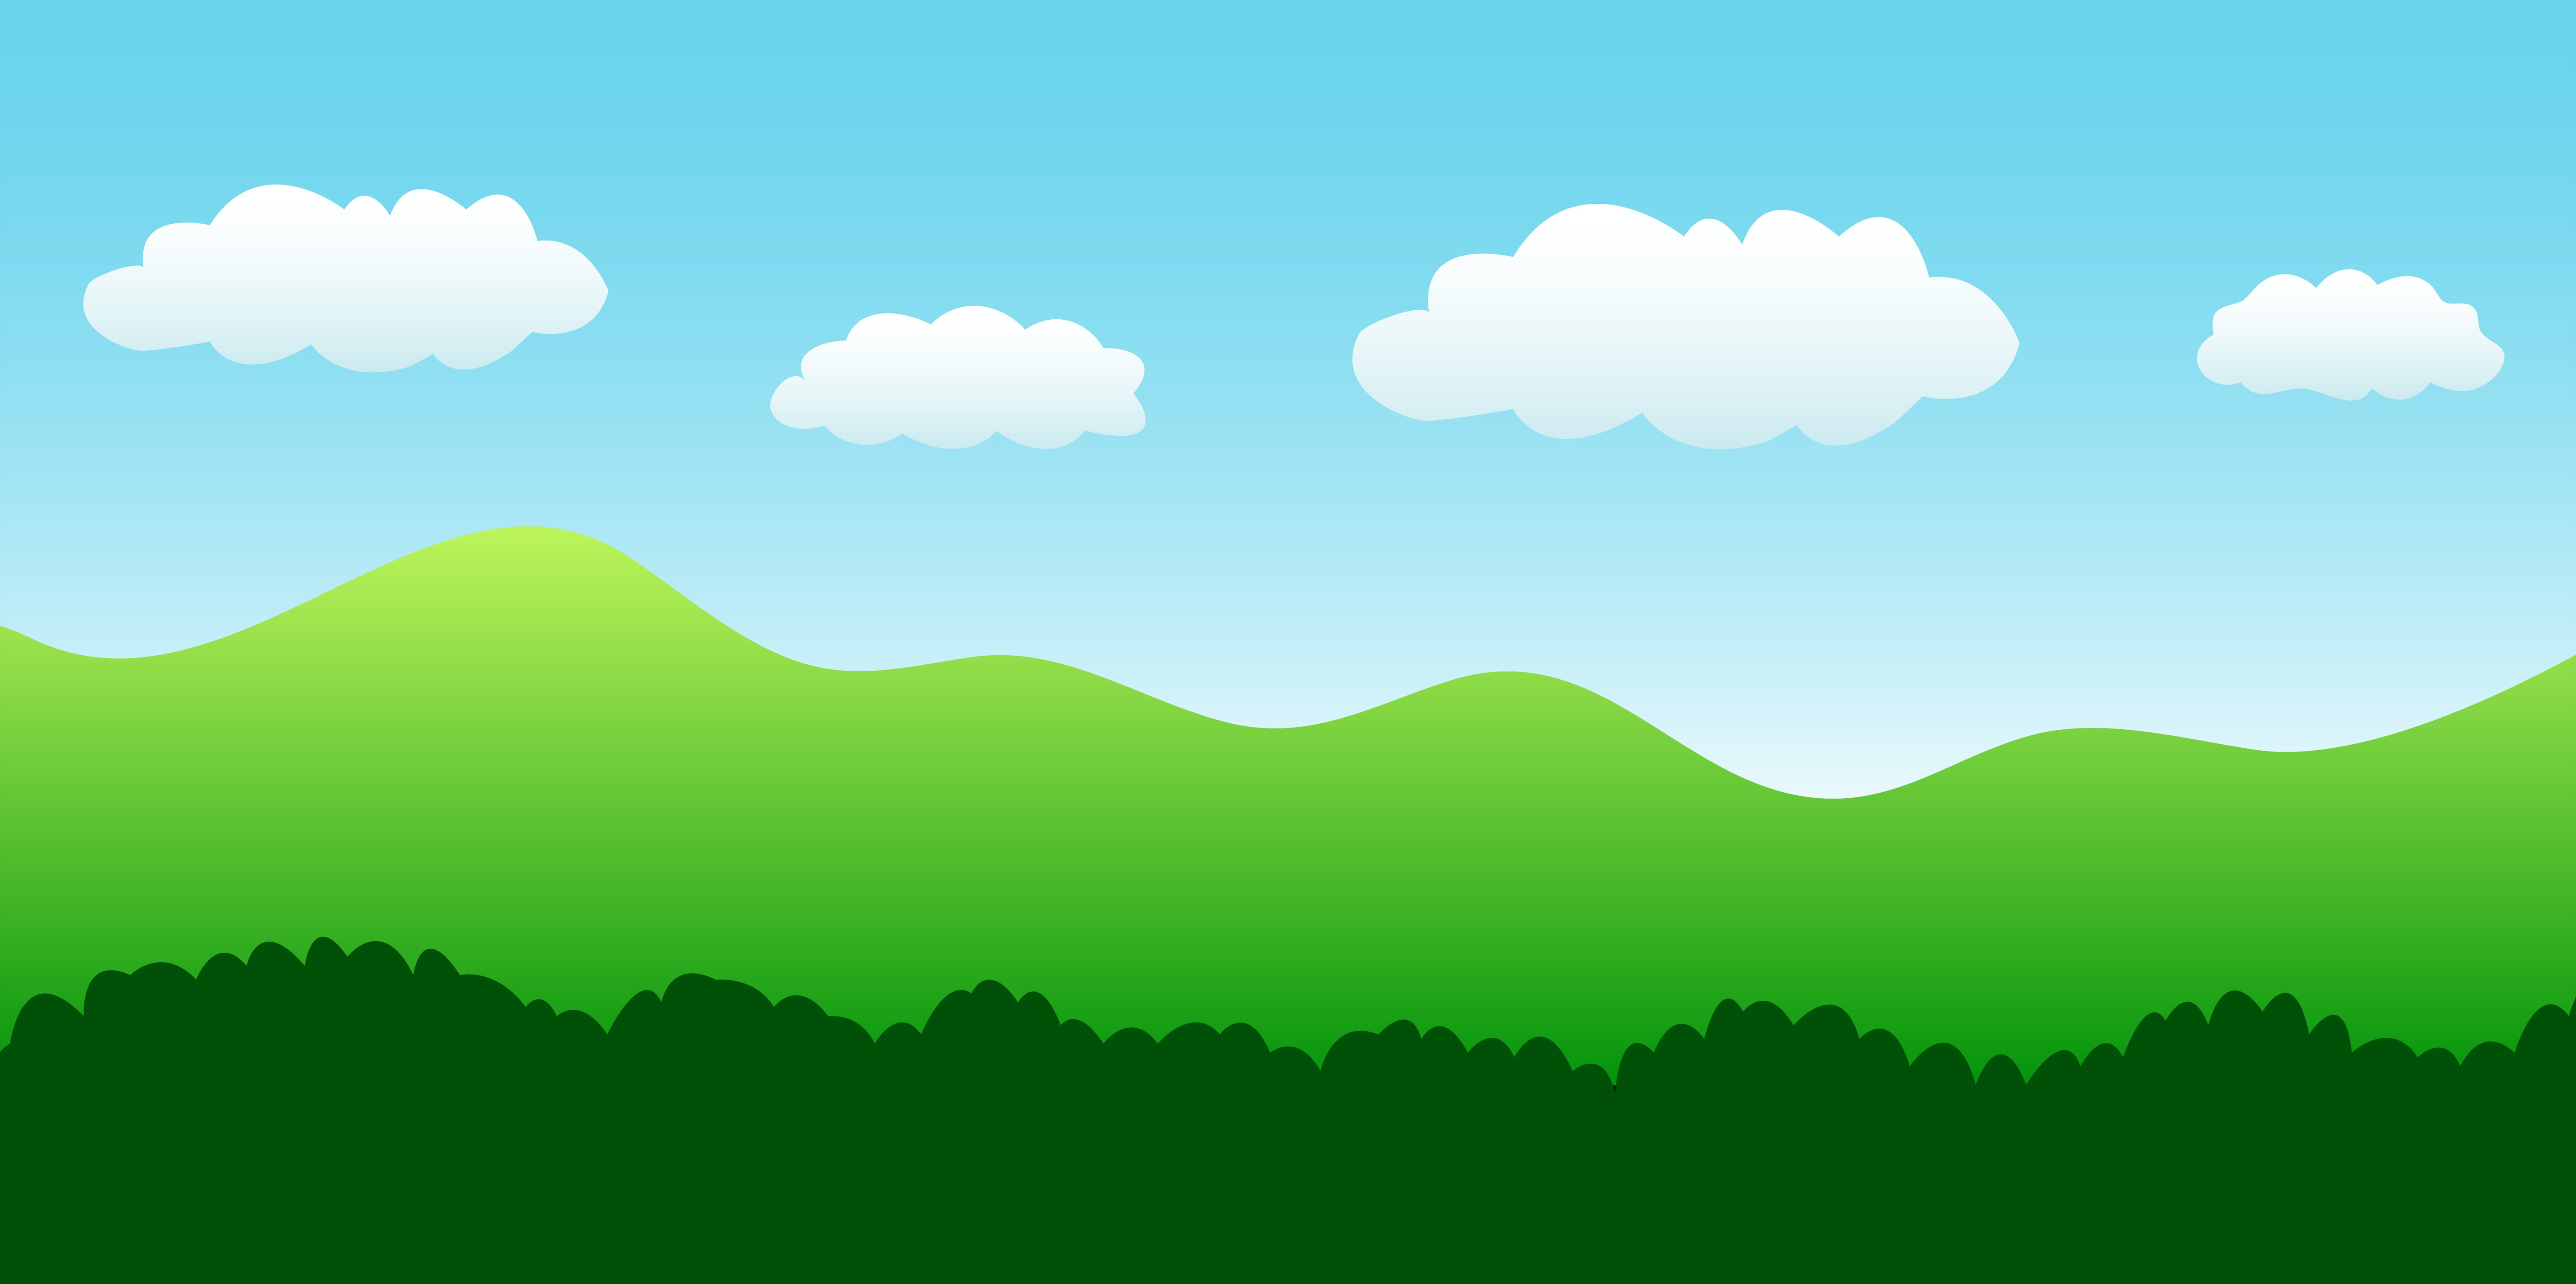 Sky clipart #4, Download drawings